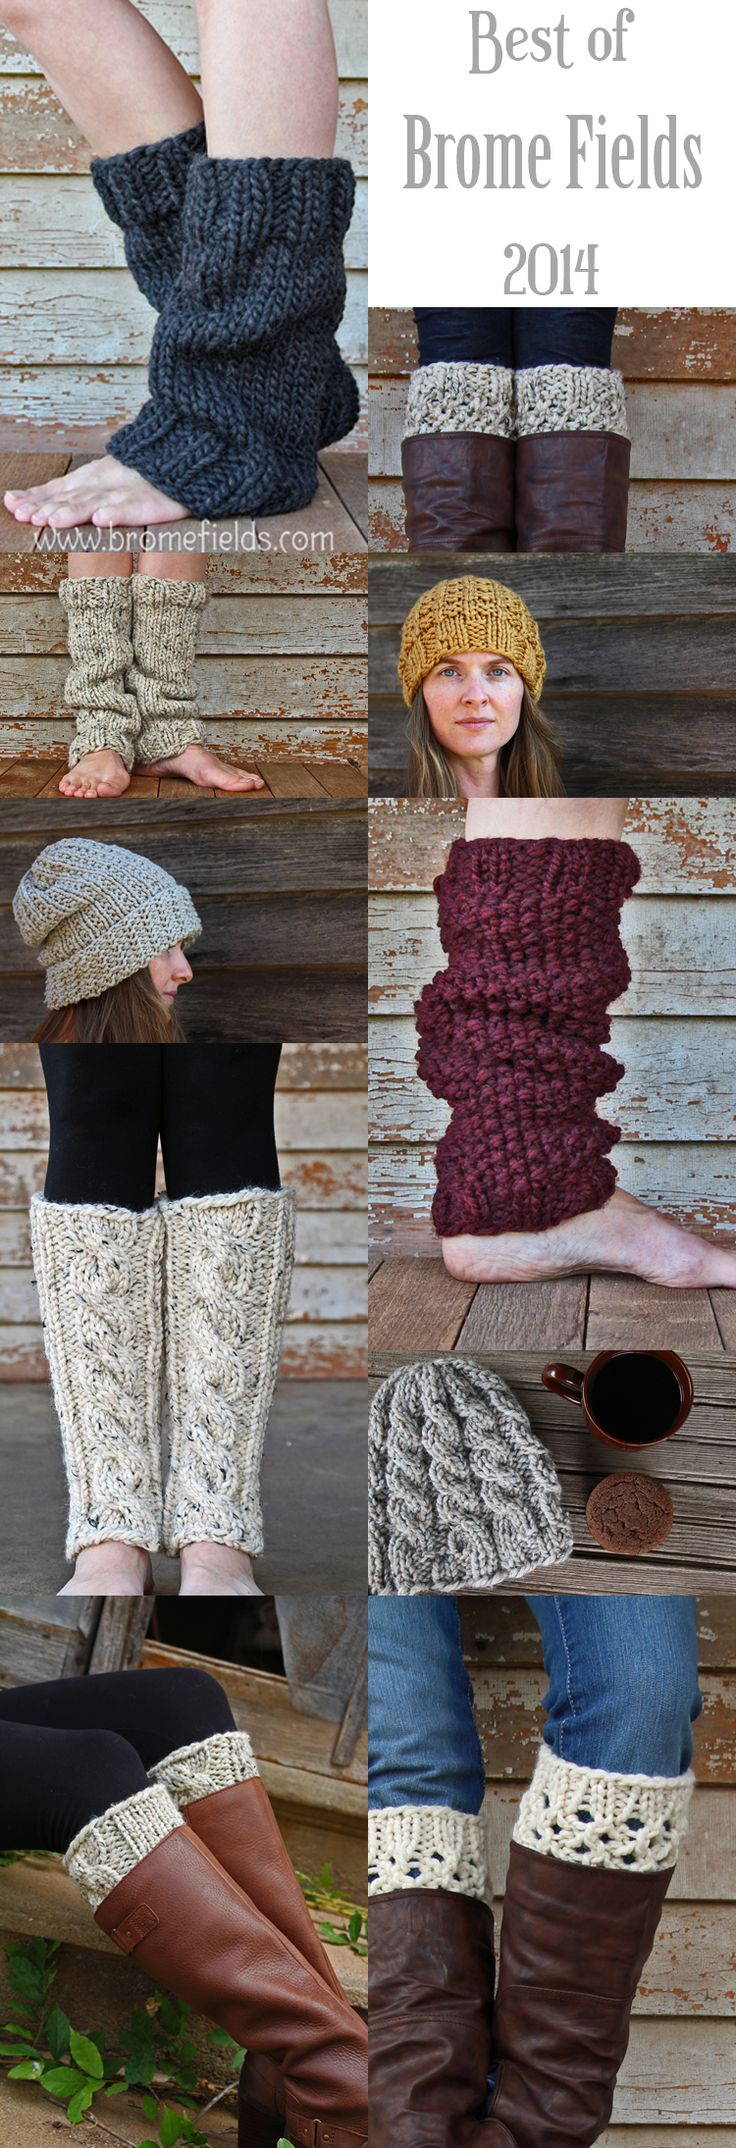 Top 10 Knitting Patterns for 2014 by Brome Fields